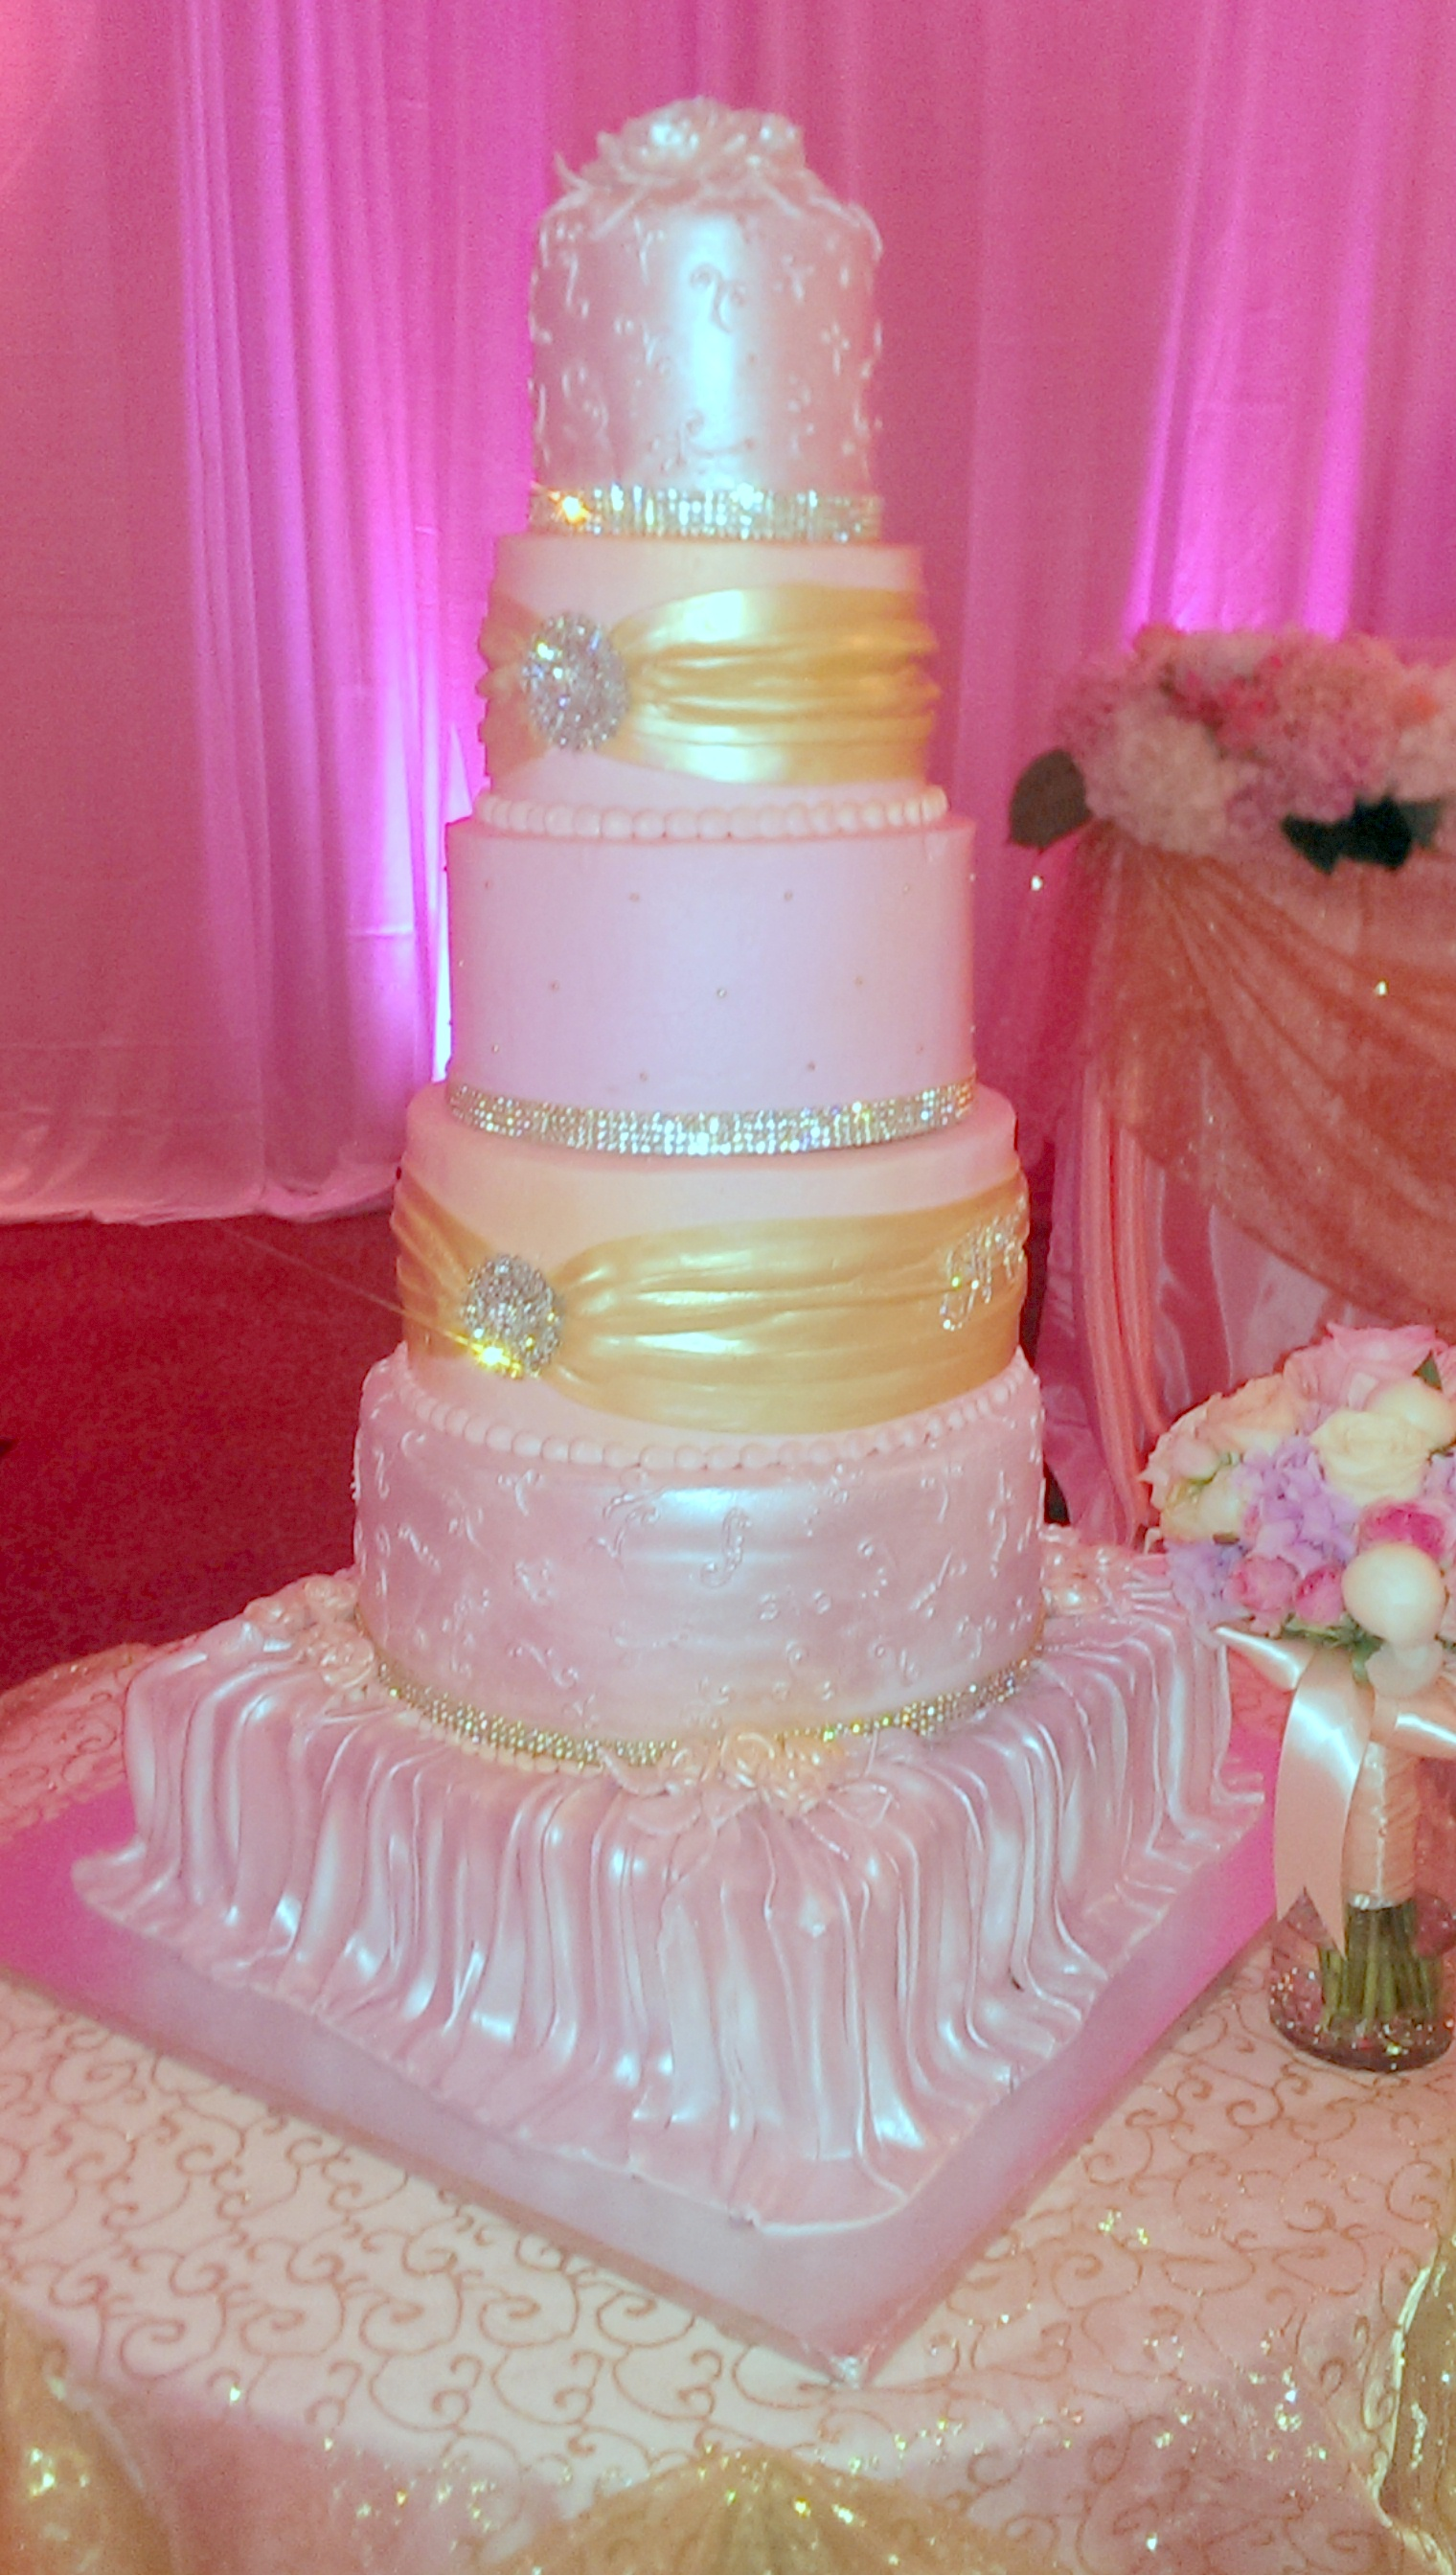 wedding-pink fondant draping, gold sashes.jpg